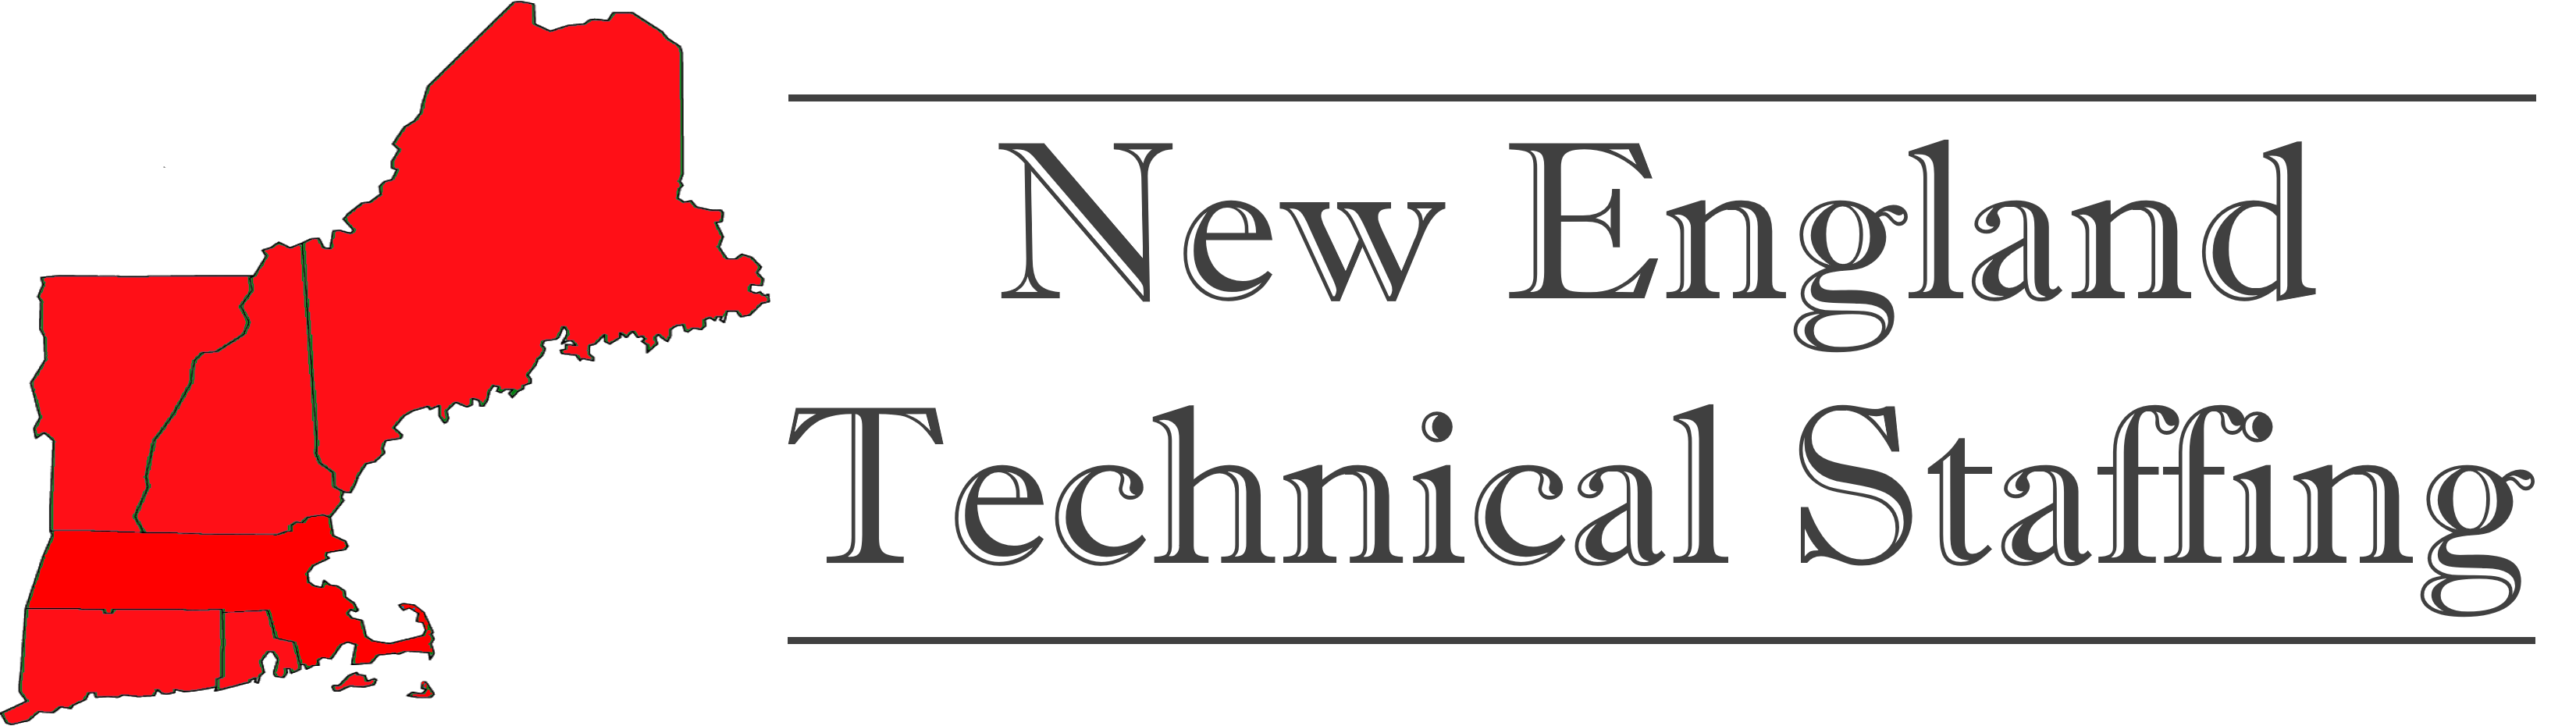 New England Technical Staffing